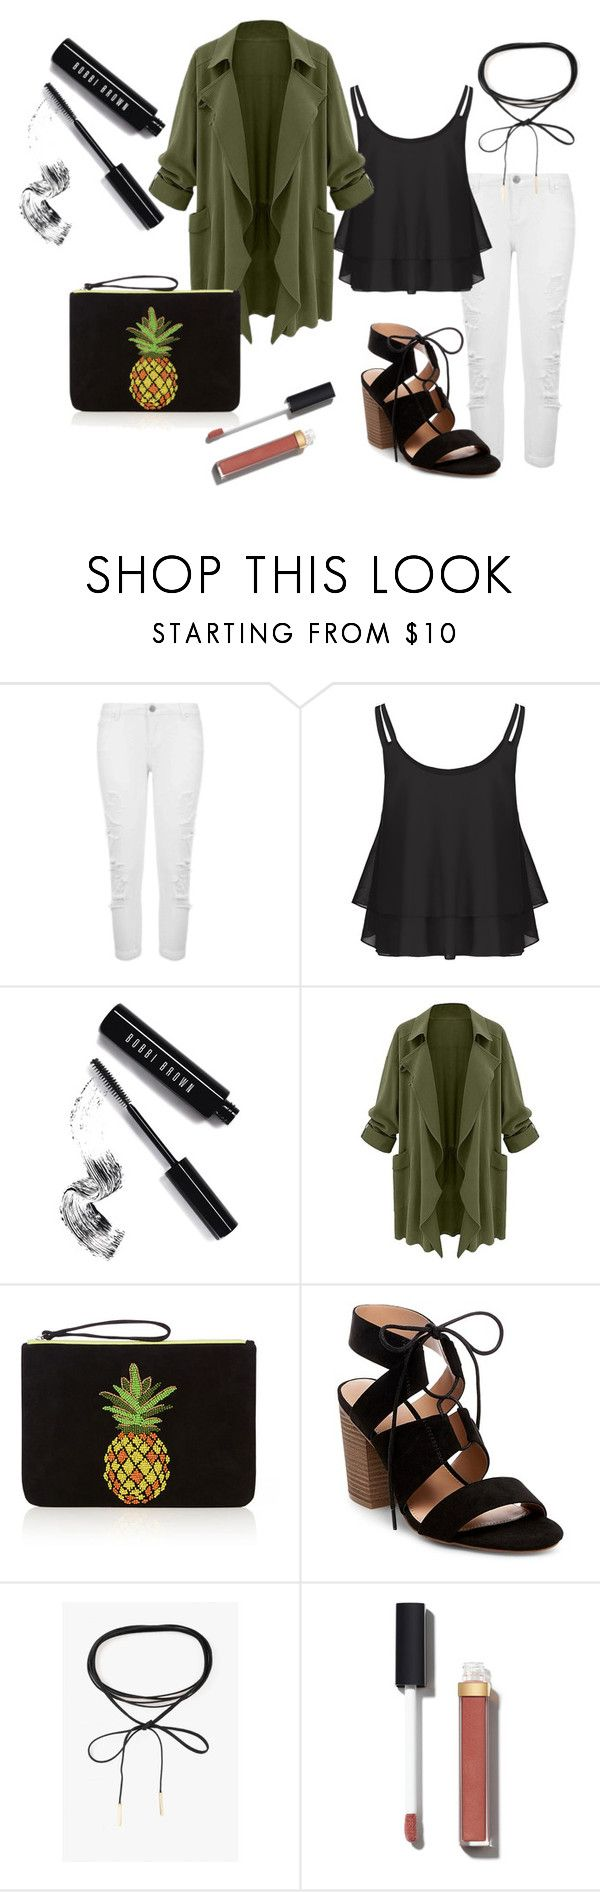 dress to impress by patsilvarte-blog on Polyvore featuring Miss Selfridge, Merona, Azalea, Chanel and Bobbi Brown Cosmetics  #ootd #outfit #greenarmy #pineapple